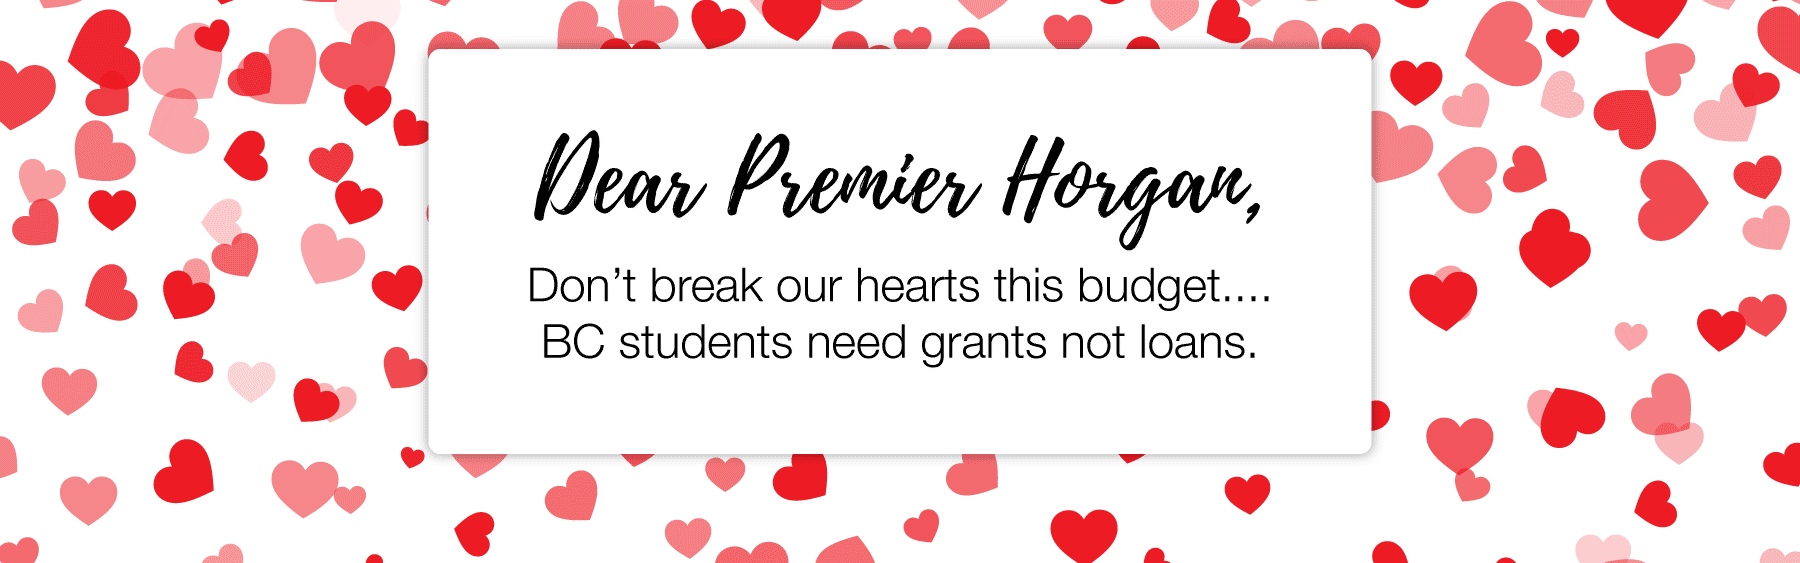 Grant Not Loans Valentines BC